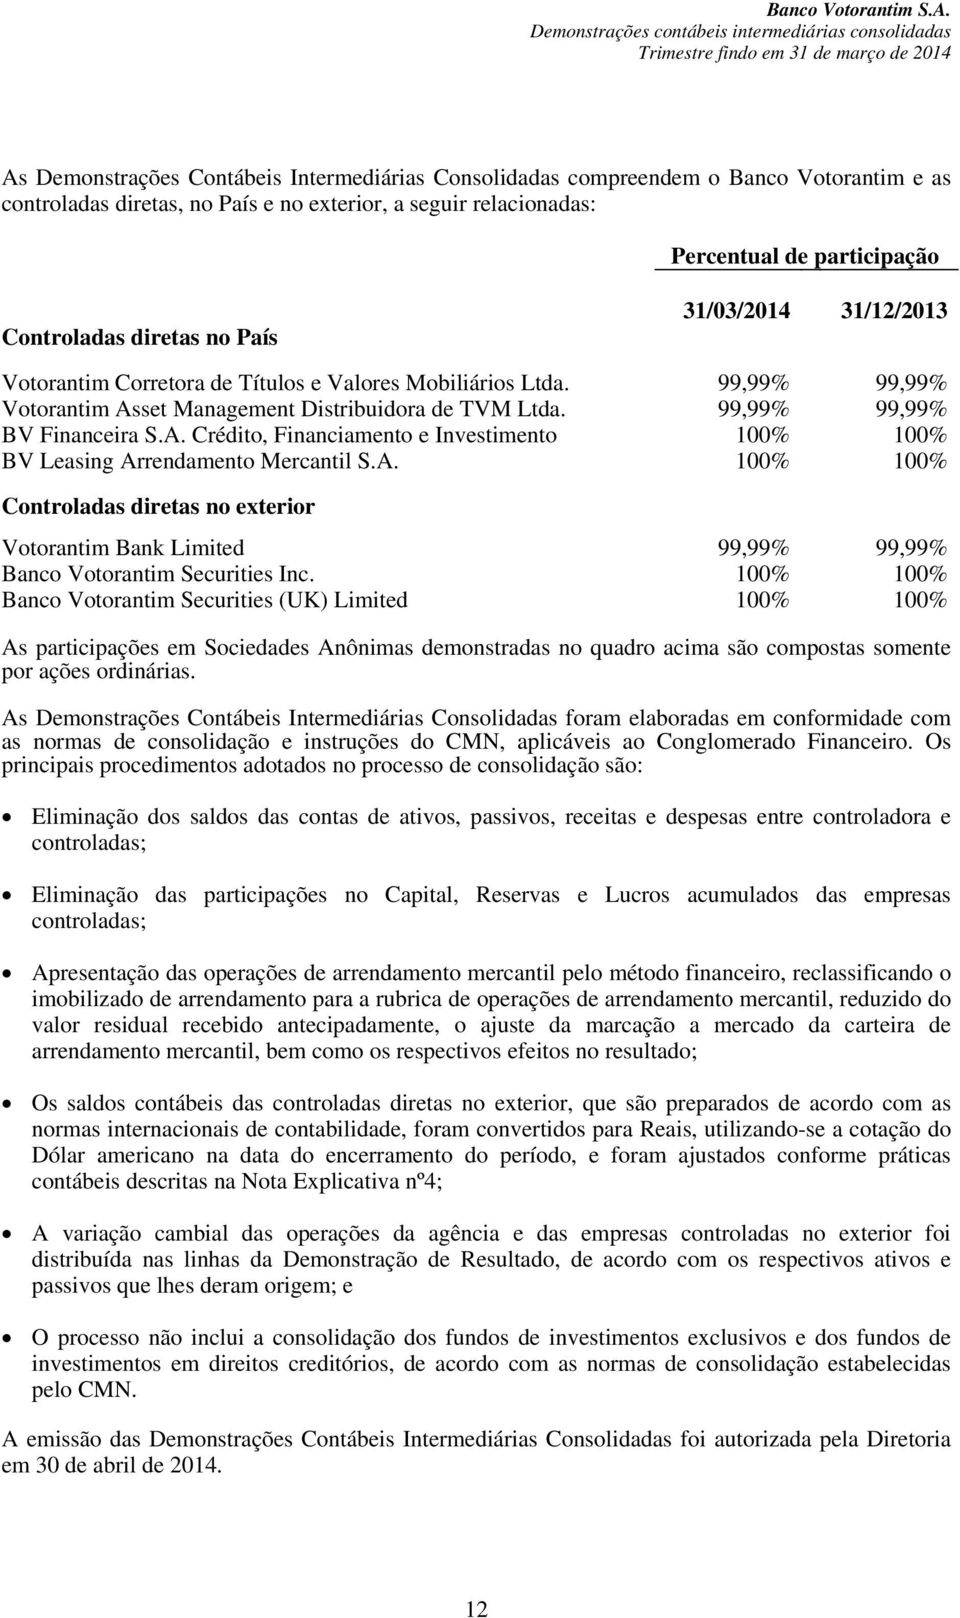 A. 100% 100% Controladas diretas no exterior Votorantim Bank Limited 99,99% 99,99% Banco Votorantim Securities Inc.